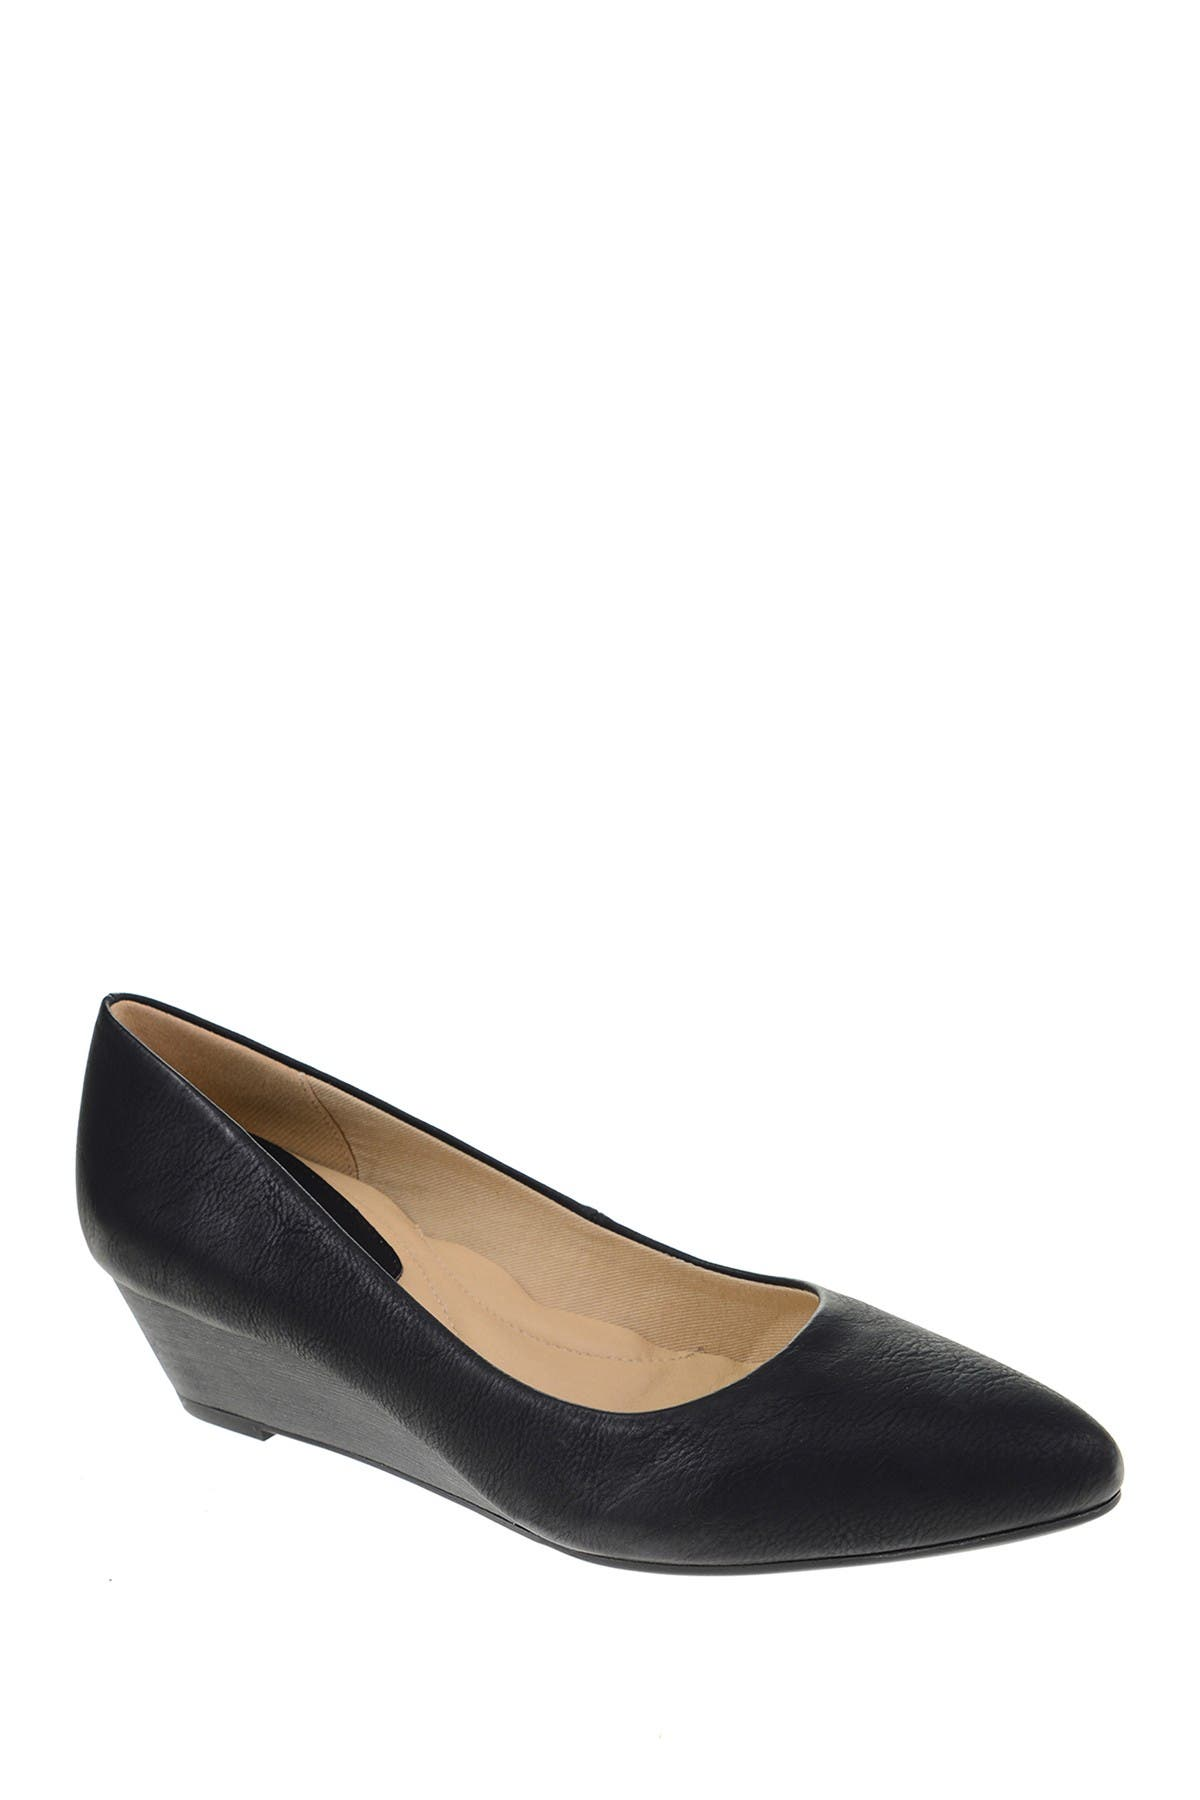 Image of CL by Laundry Alyce Wedge Pump